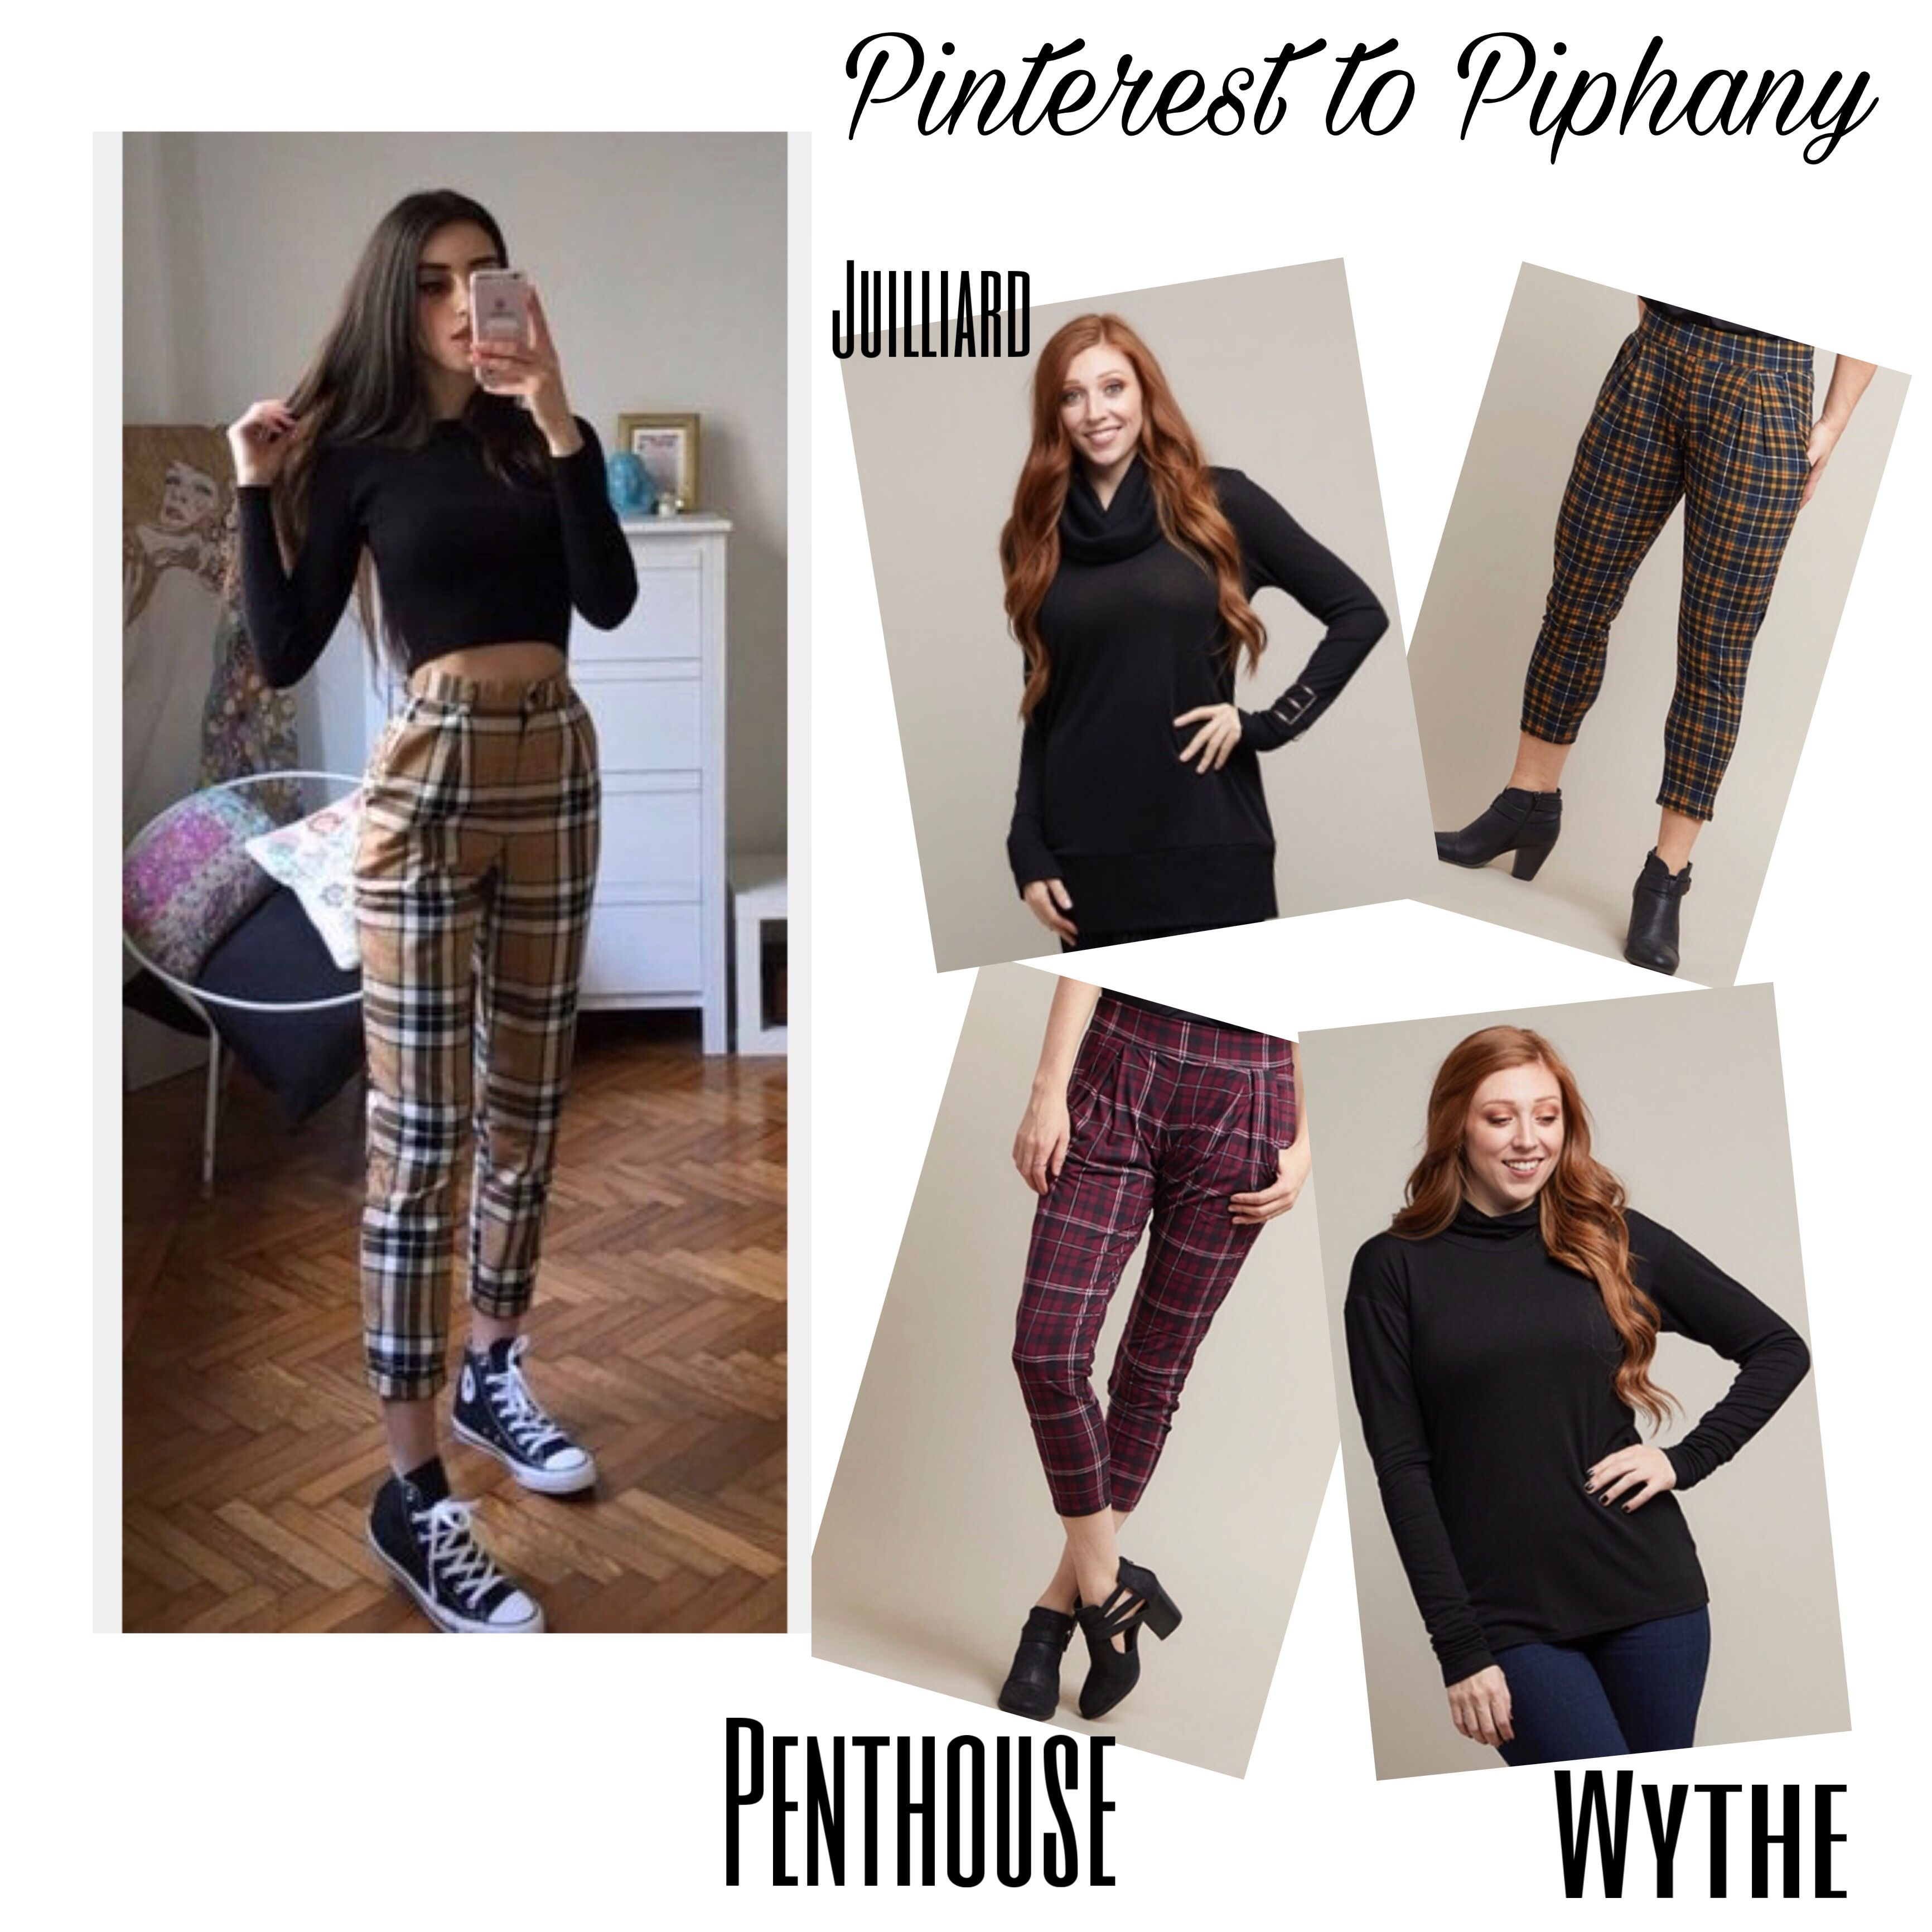 cb39cc509b342 Piphany Penthouse pant with either the Juilliard or the Wythe ...